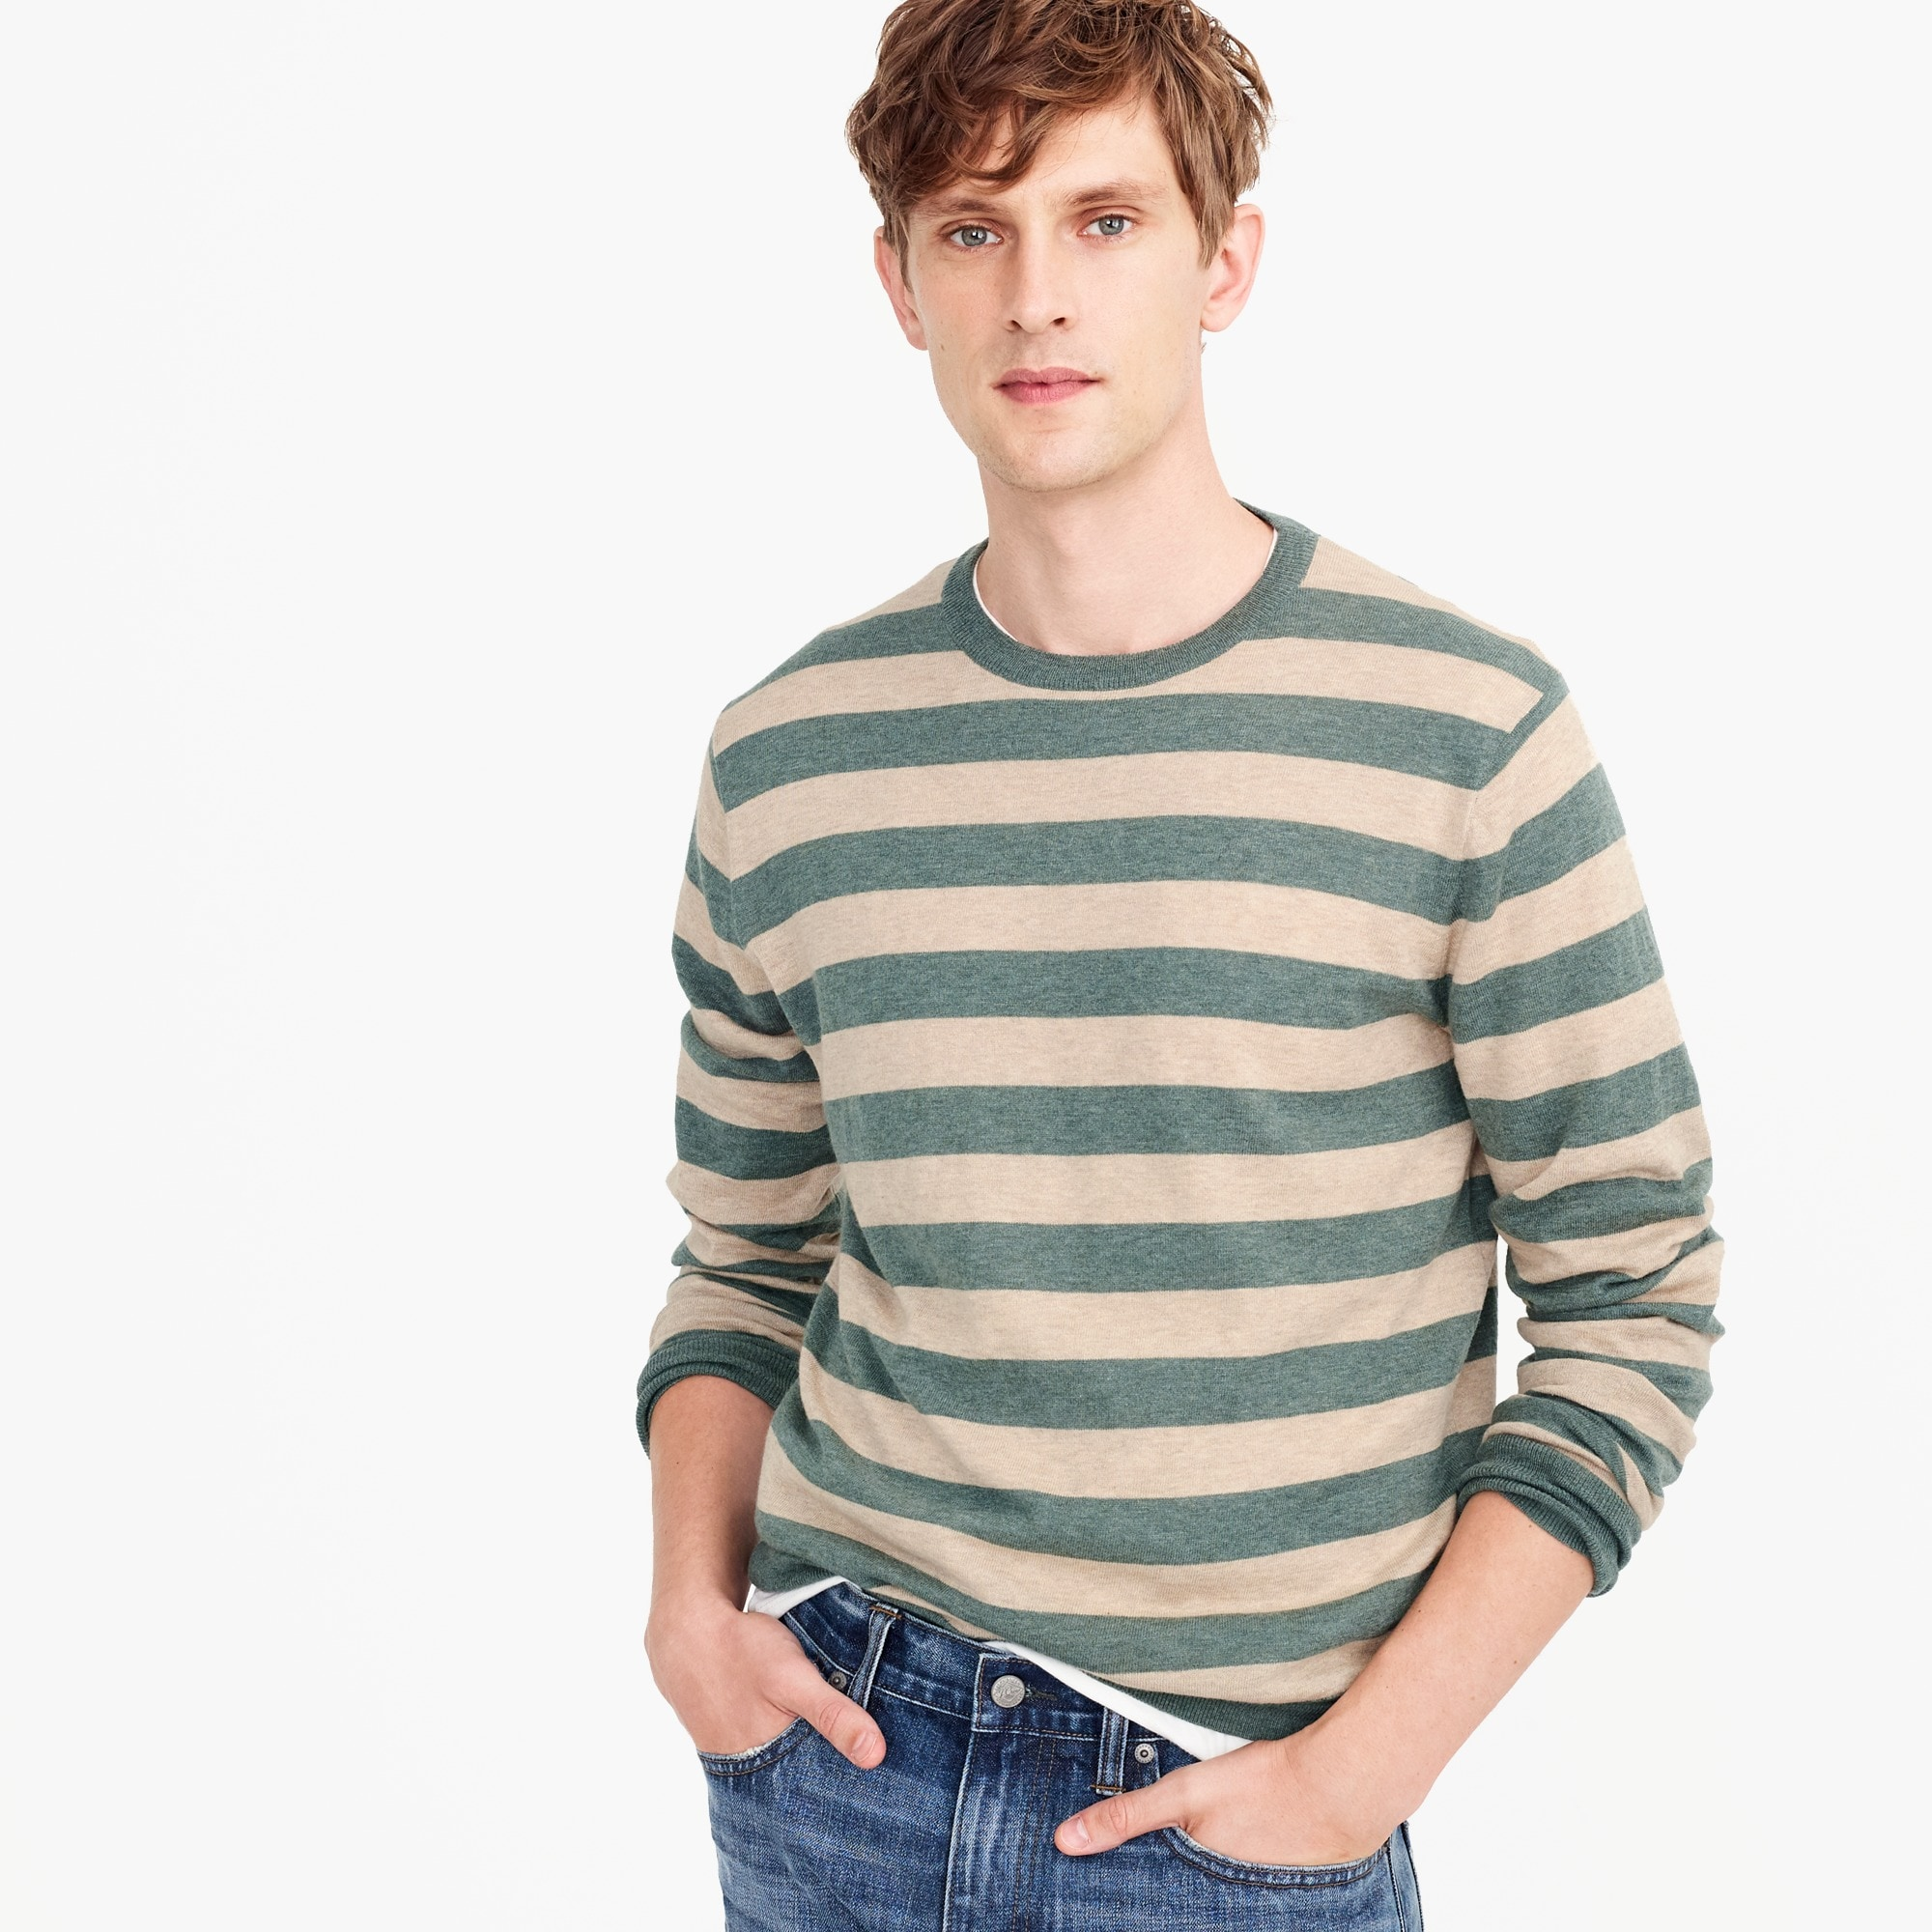 Wool-cotton crewneck sweater in wide stripe